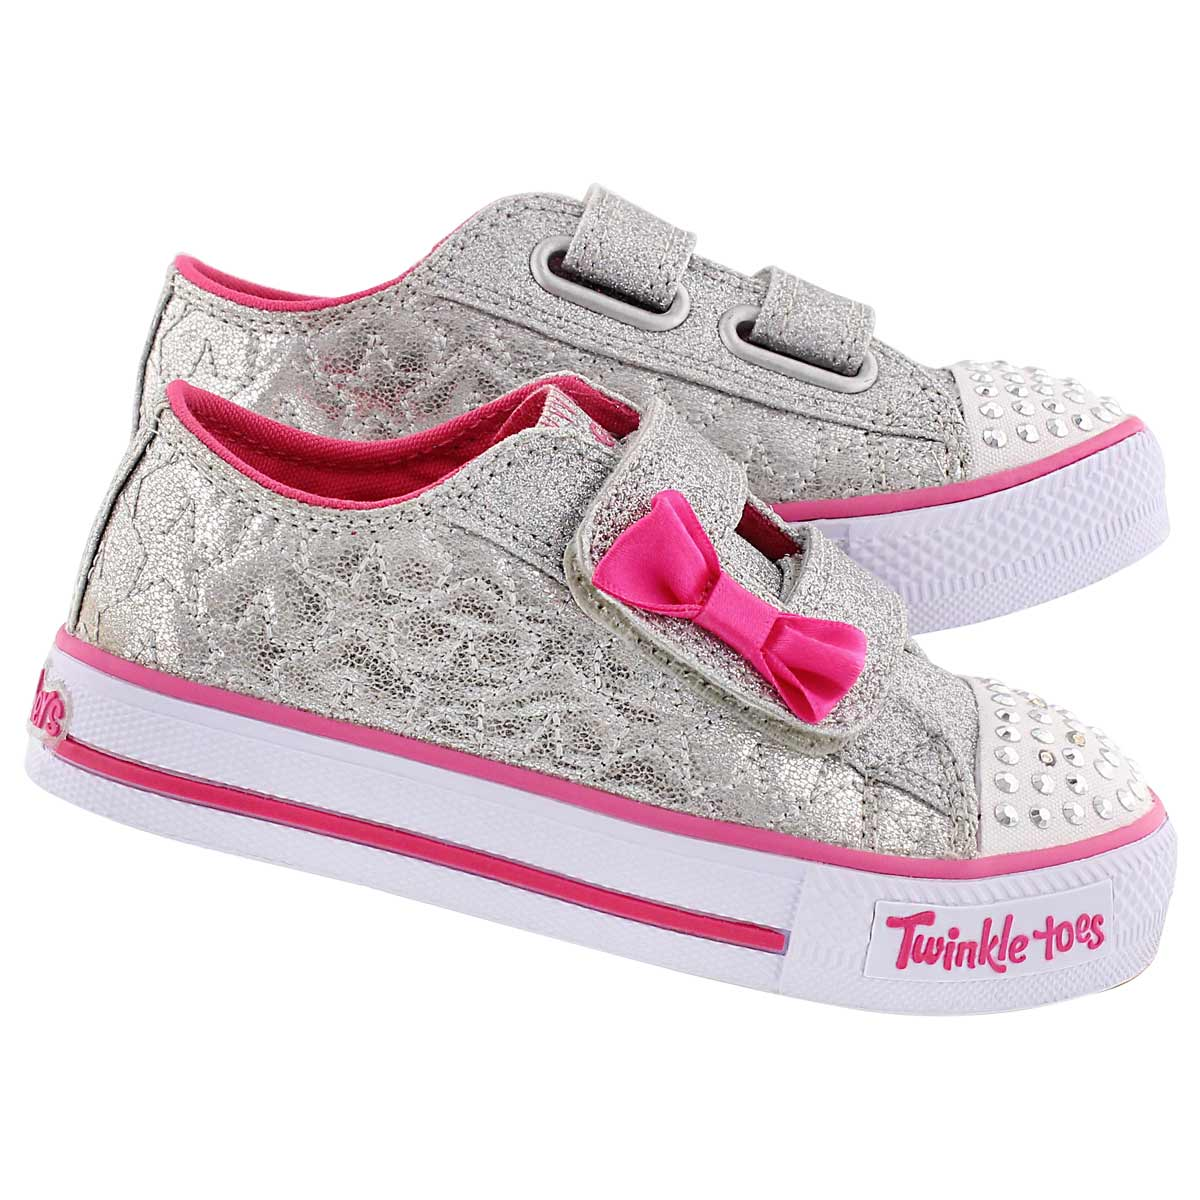 Inf Starlight Style silver/pink sneaker